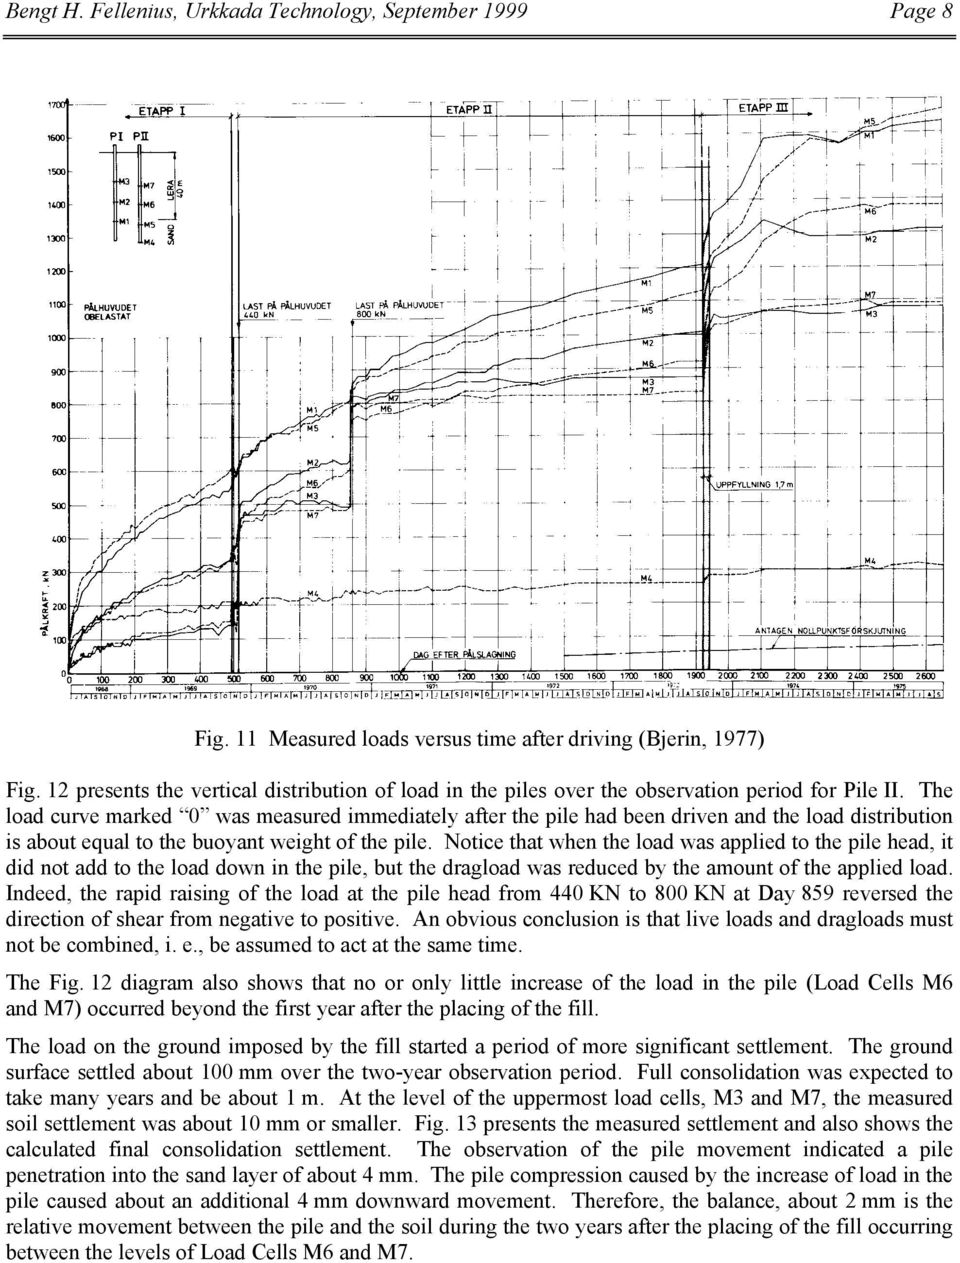 The load curve marked 0 was measured immediately after the pile had been driven and the load distribution is about equal to the buoyant weight of the pile.